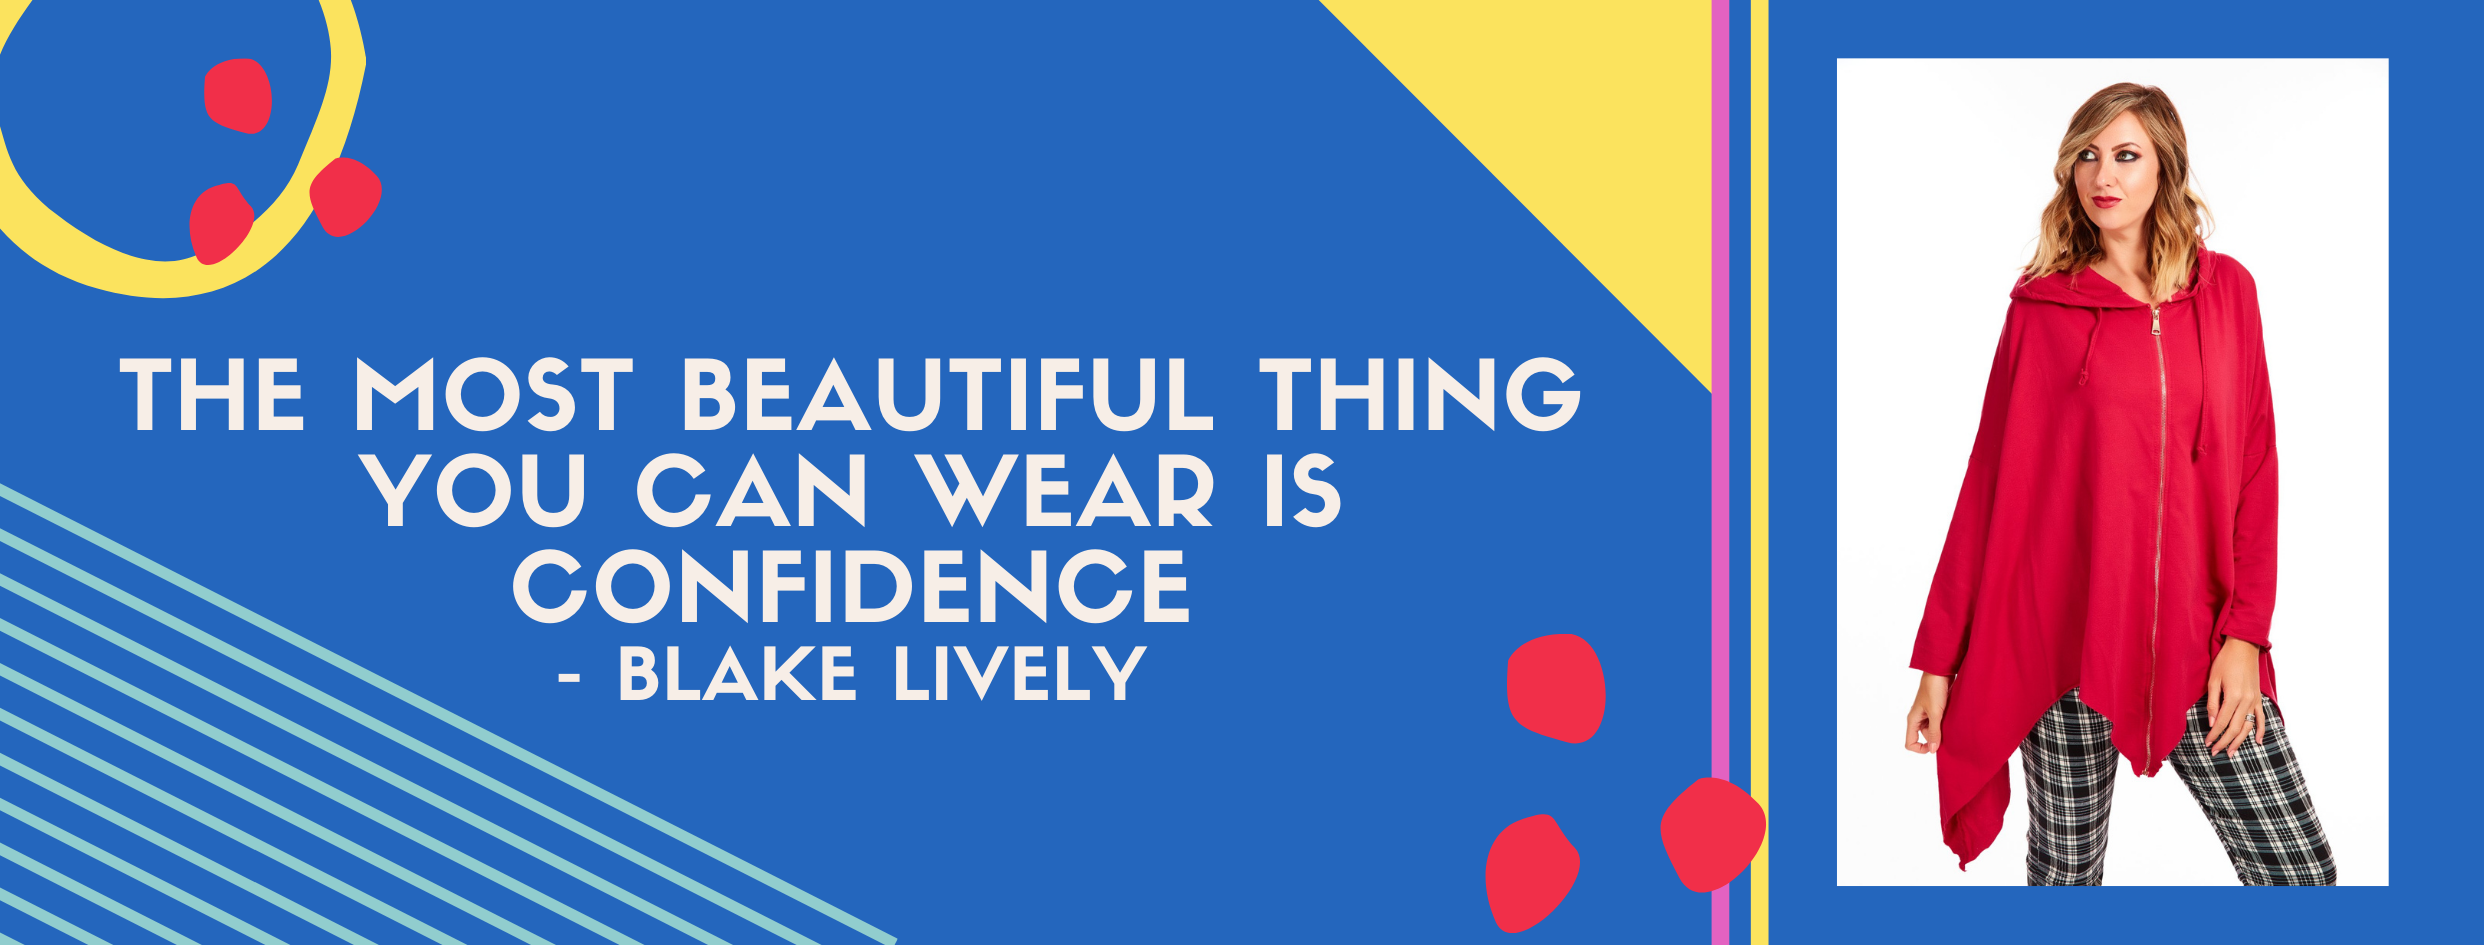 The Most beautiful thing you can wear is confidence blake lively quote Euphoria Boutique free size clothing